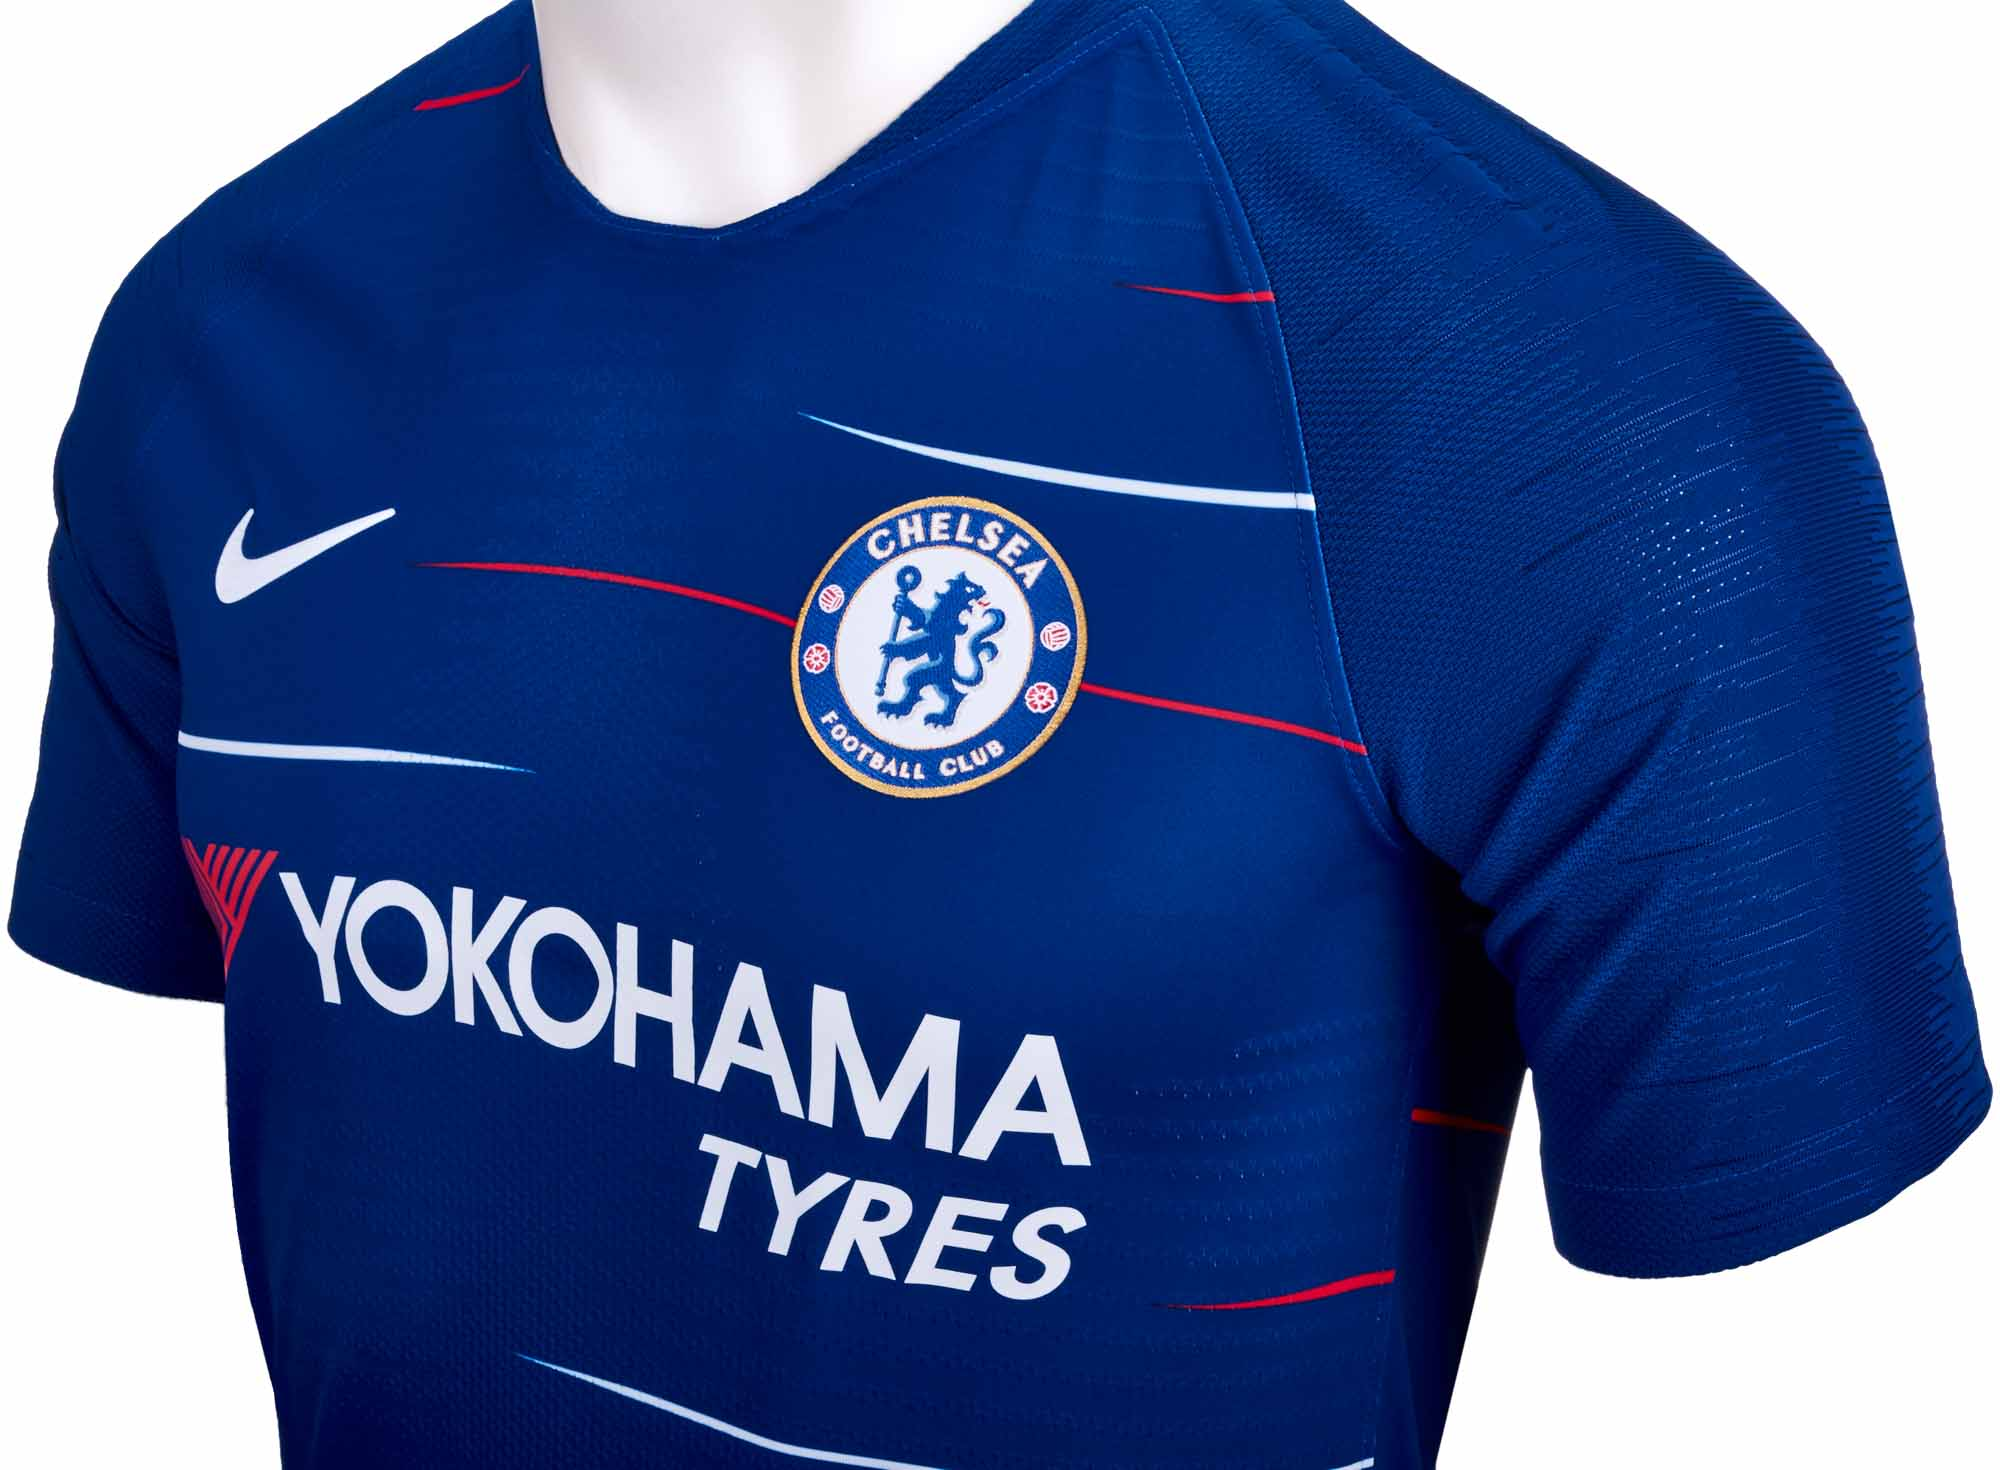 finest selection ed11c 75b55 2018/19 Nike Olivier Giroud Chelsea Home Match Jersey ...